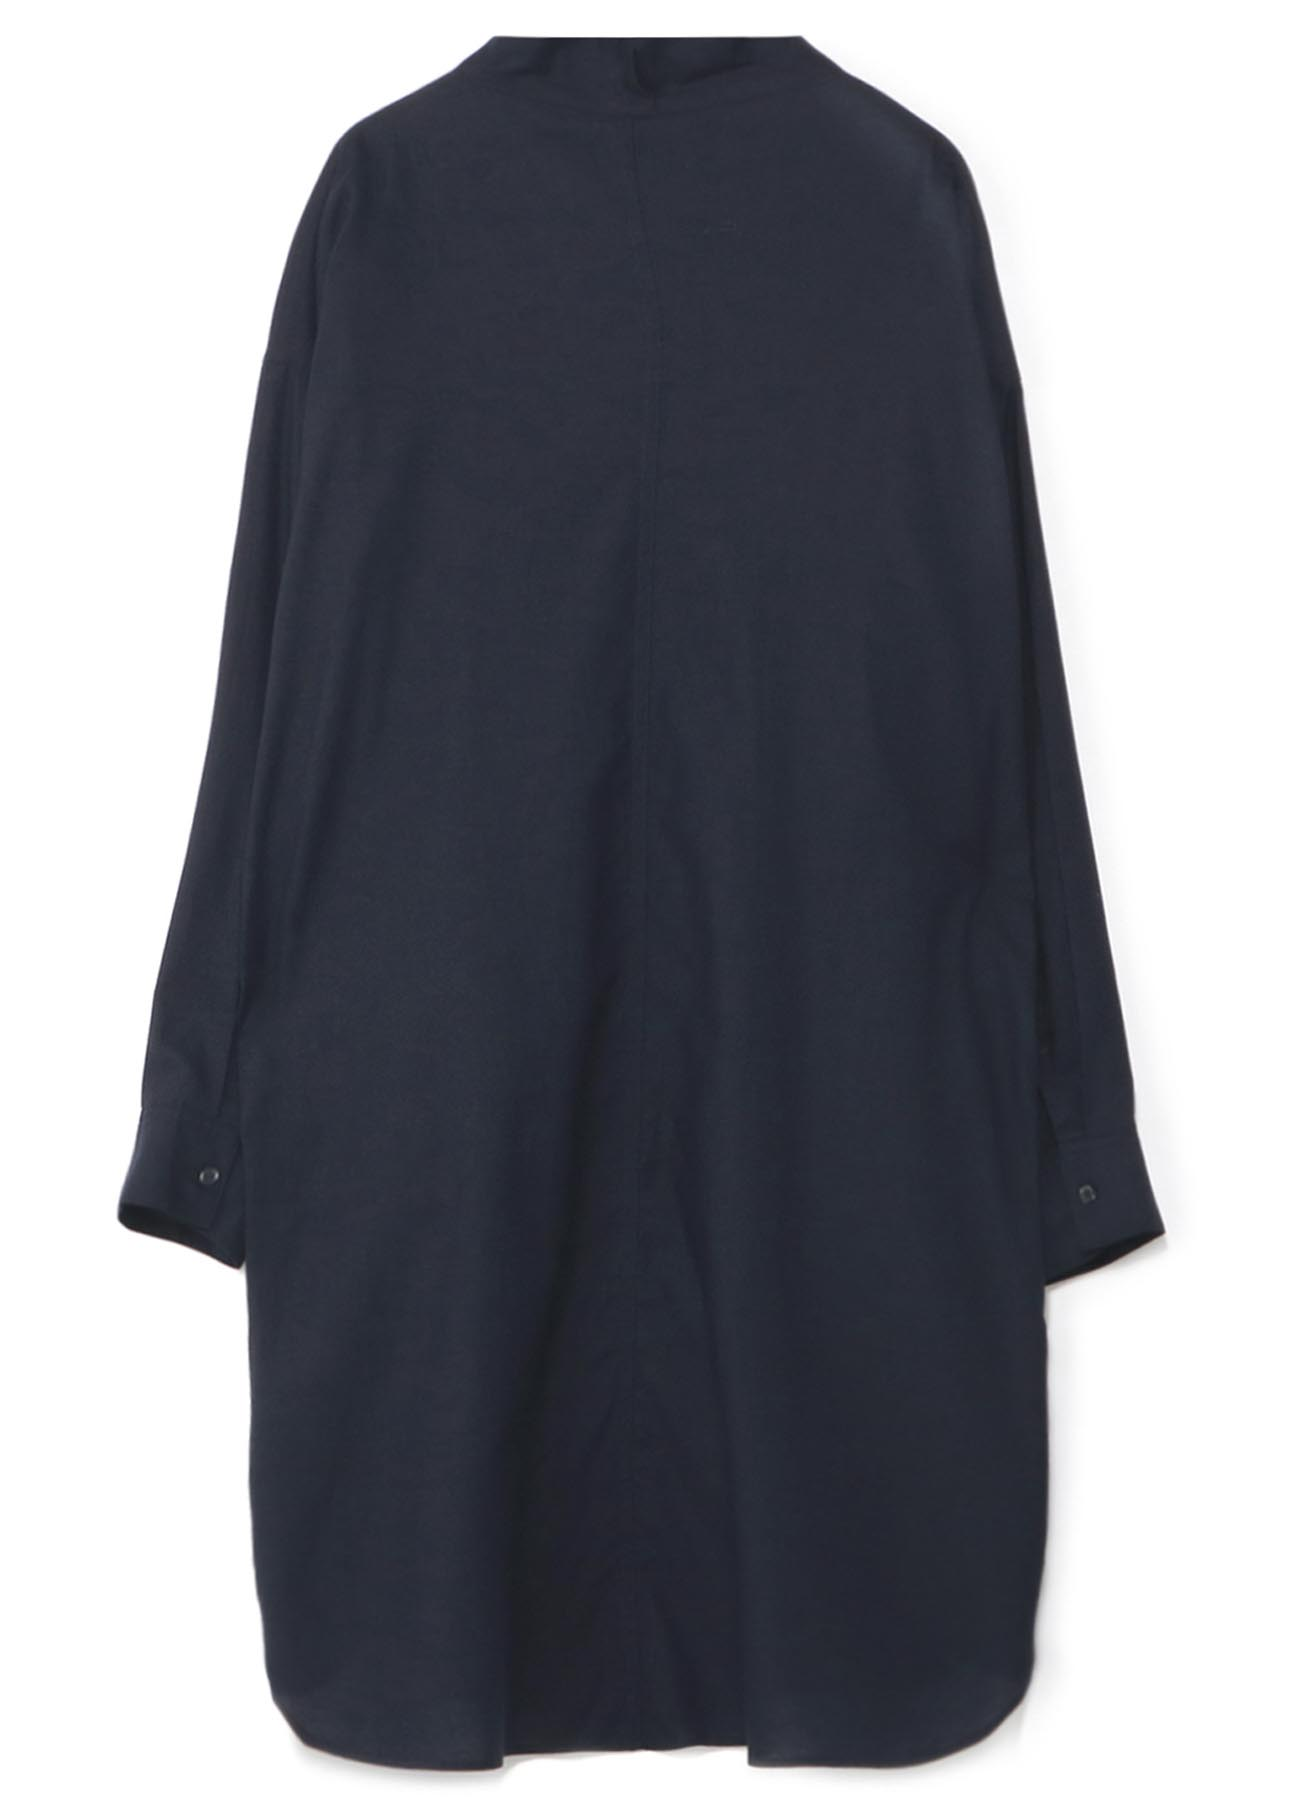 Y's-BORN PRODUCT OVER SHIRT DRESS